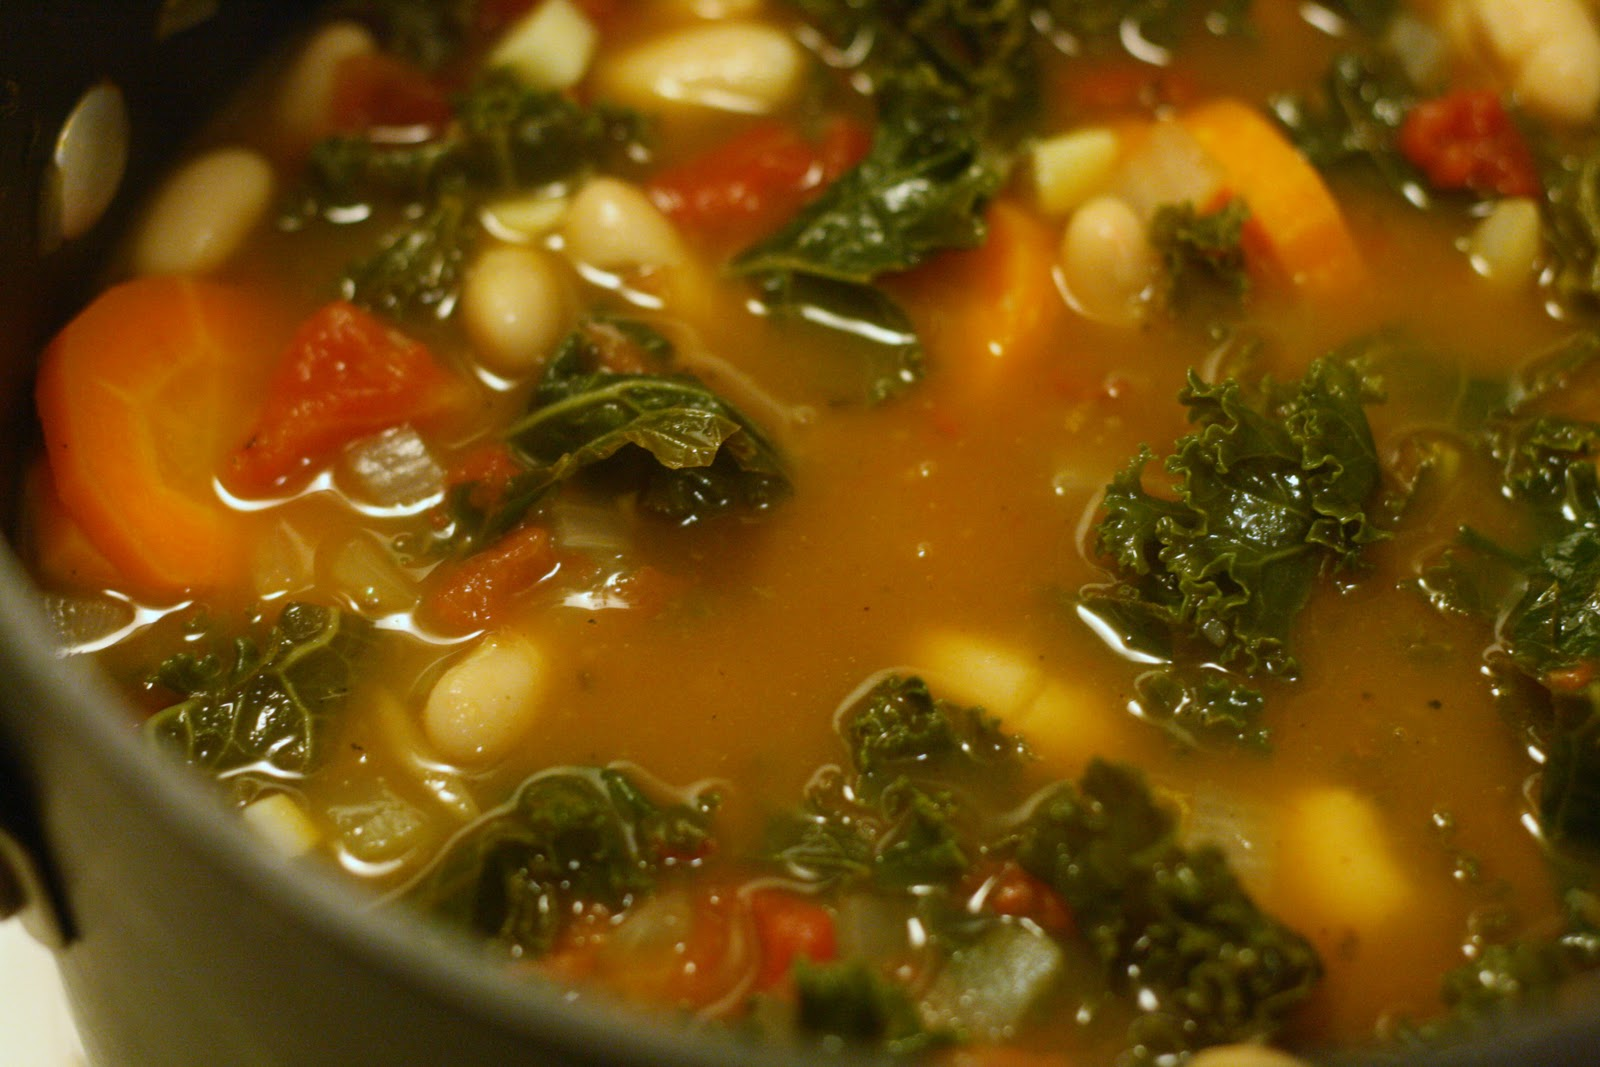 bunch of tuscan kale kale and white bean soup fnm 110112 pasta kale ...